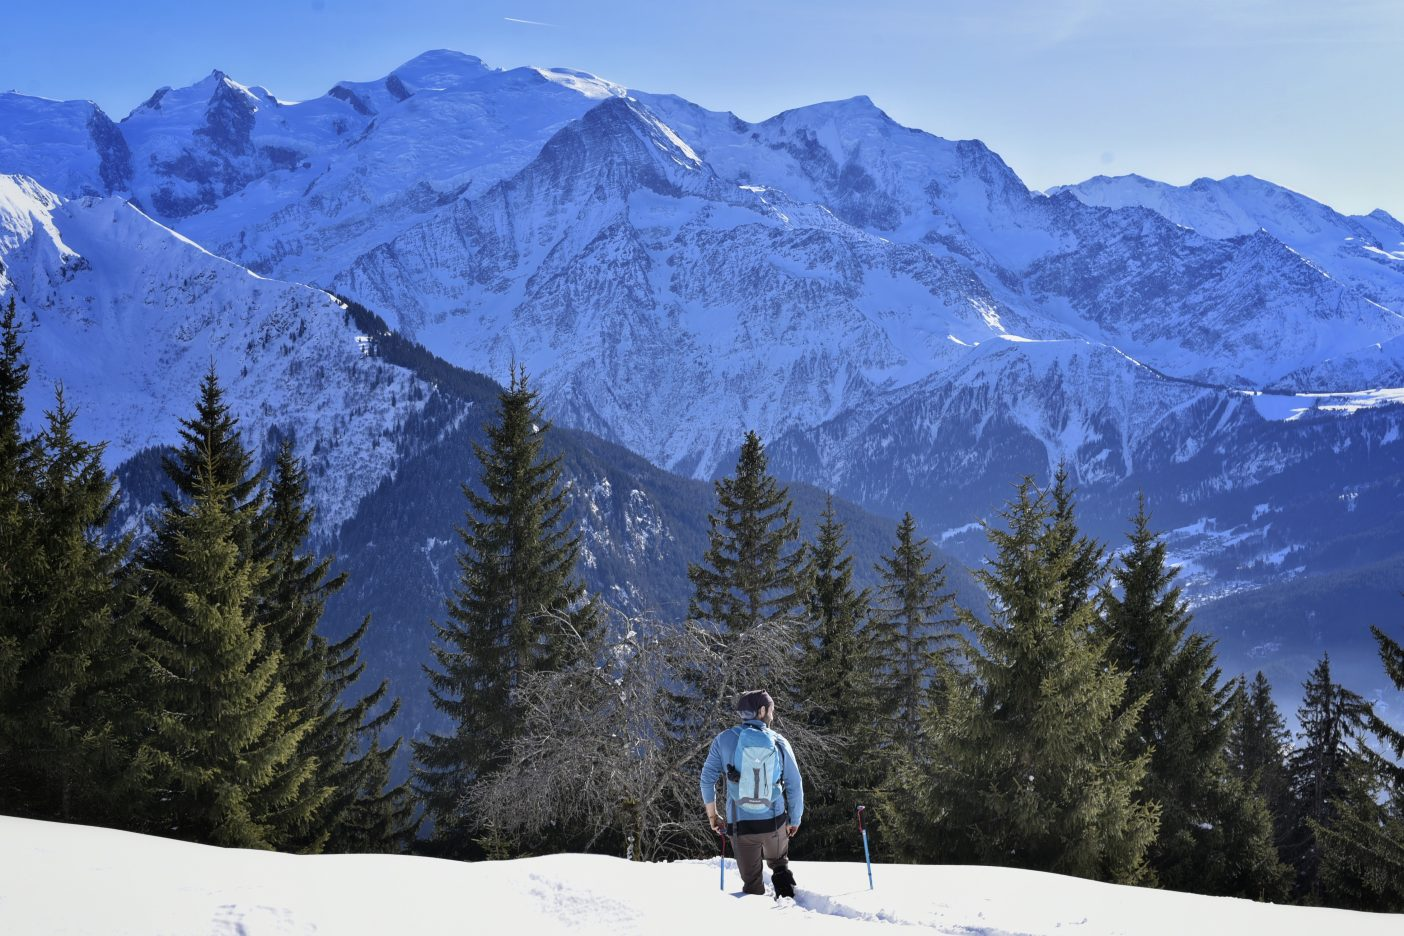 Man in front of snowy mountains